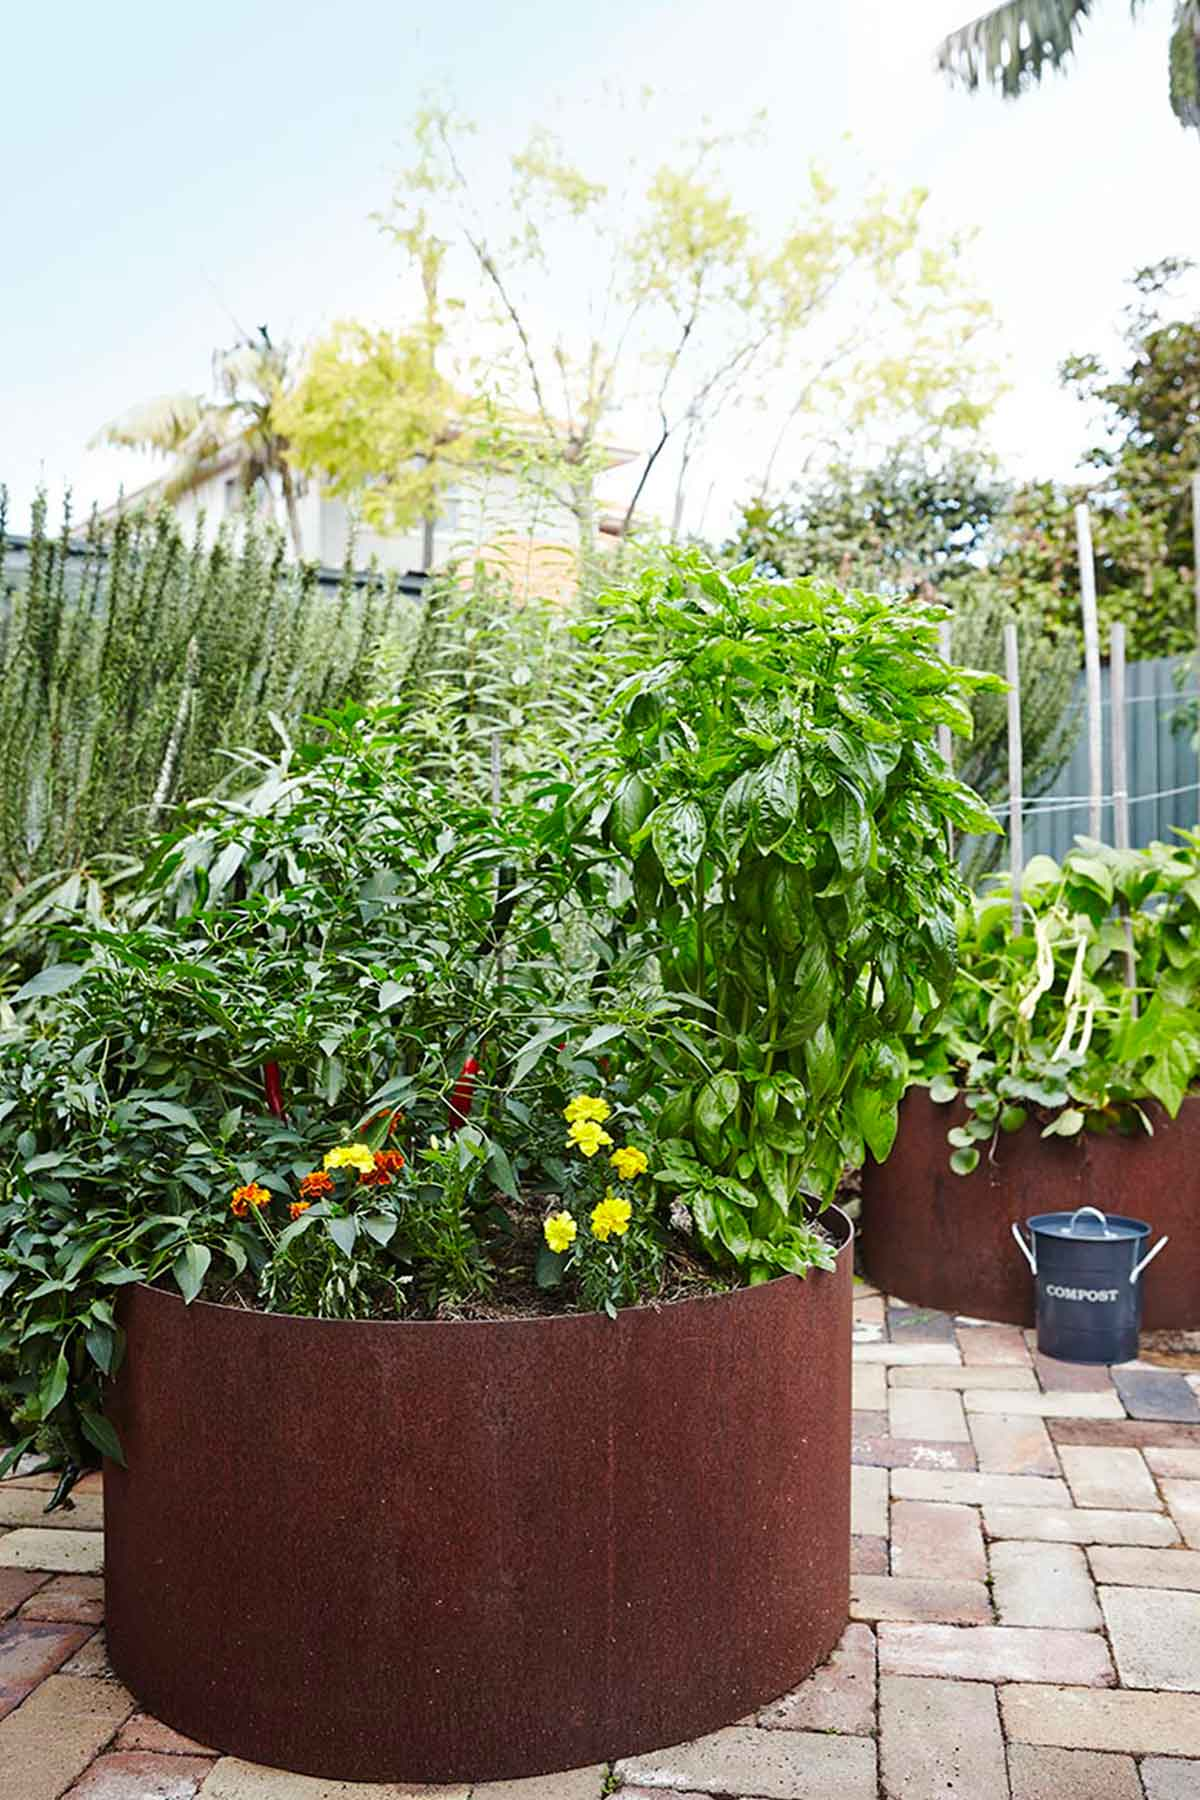 A good soak once a week for garden beds is best. Image by Natalie Hunfalvay from our  Kingsford project